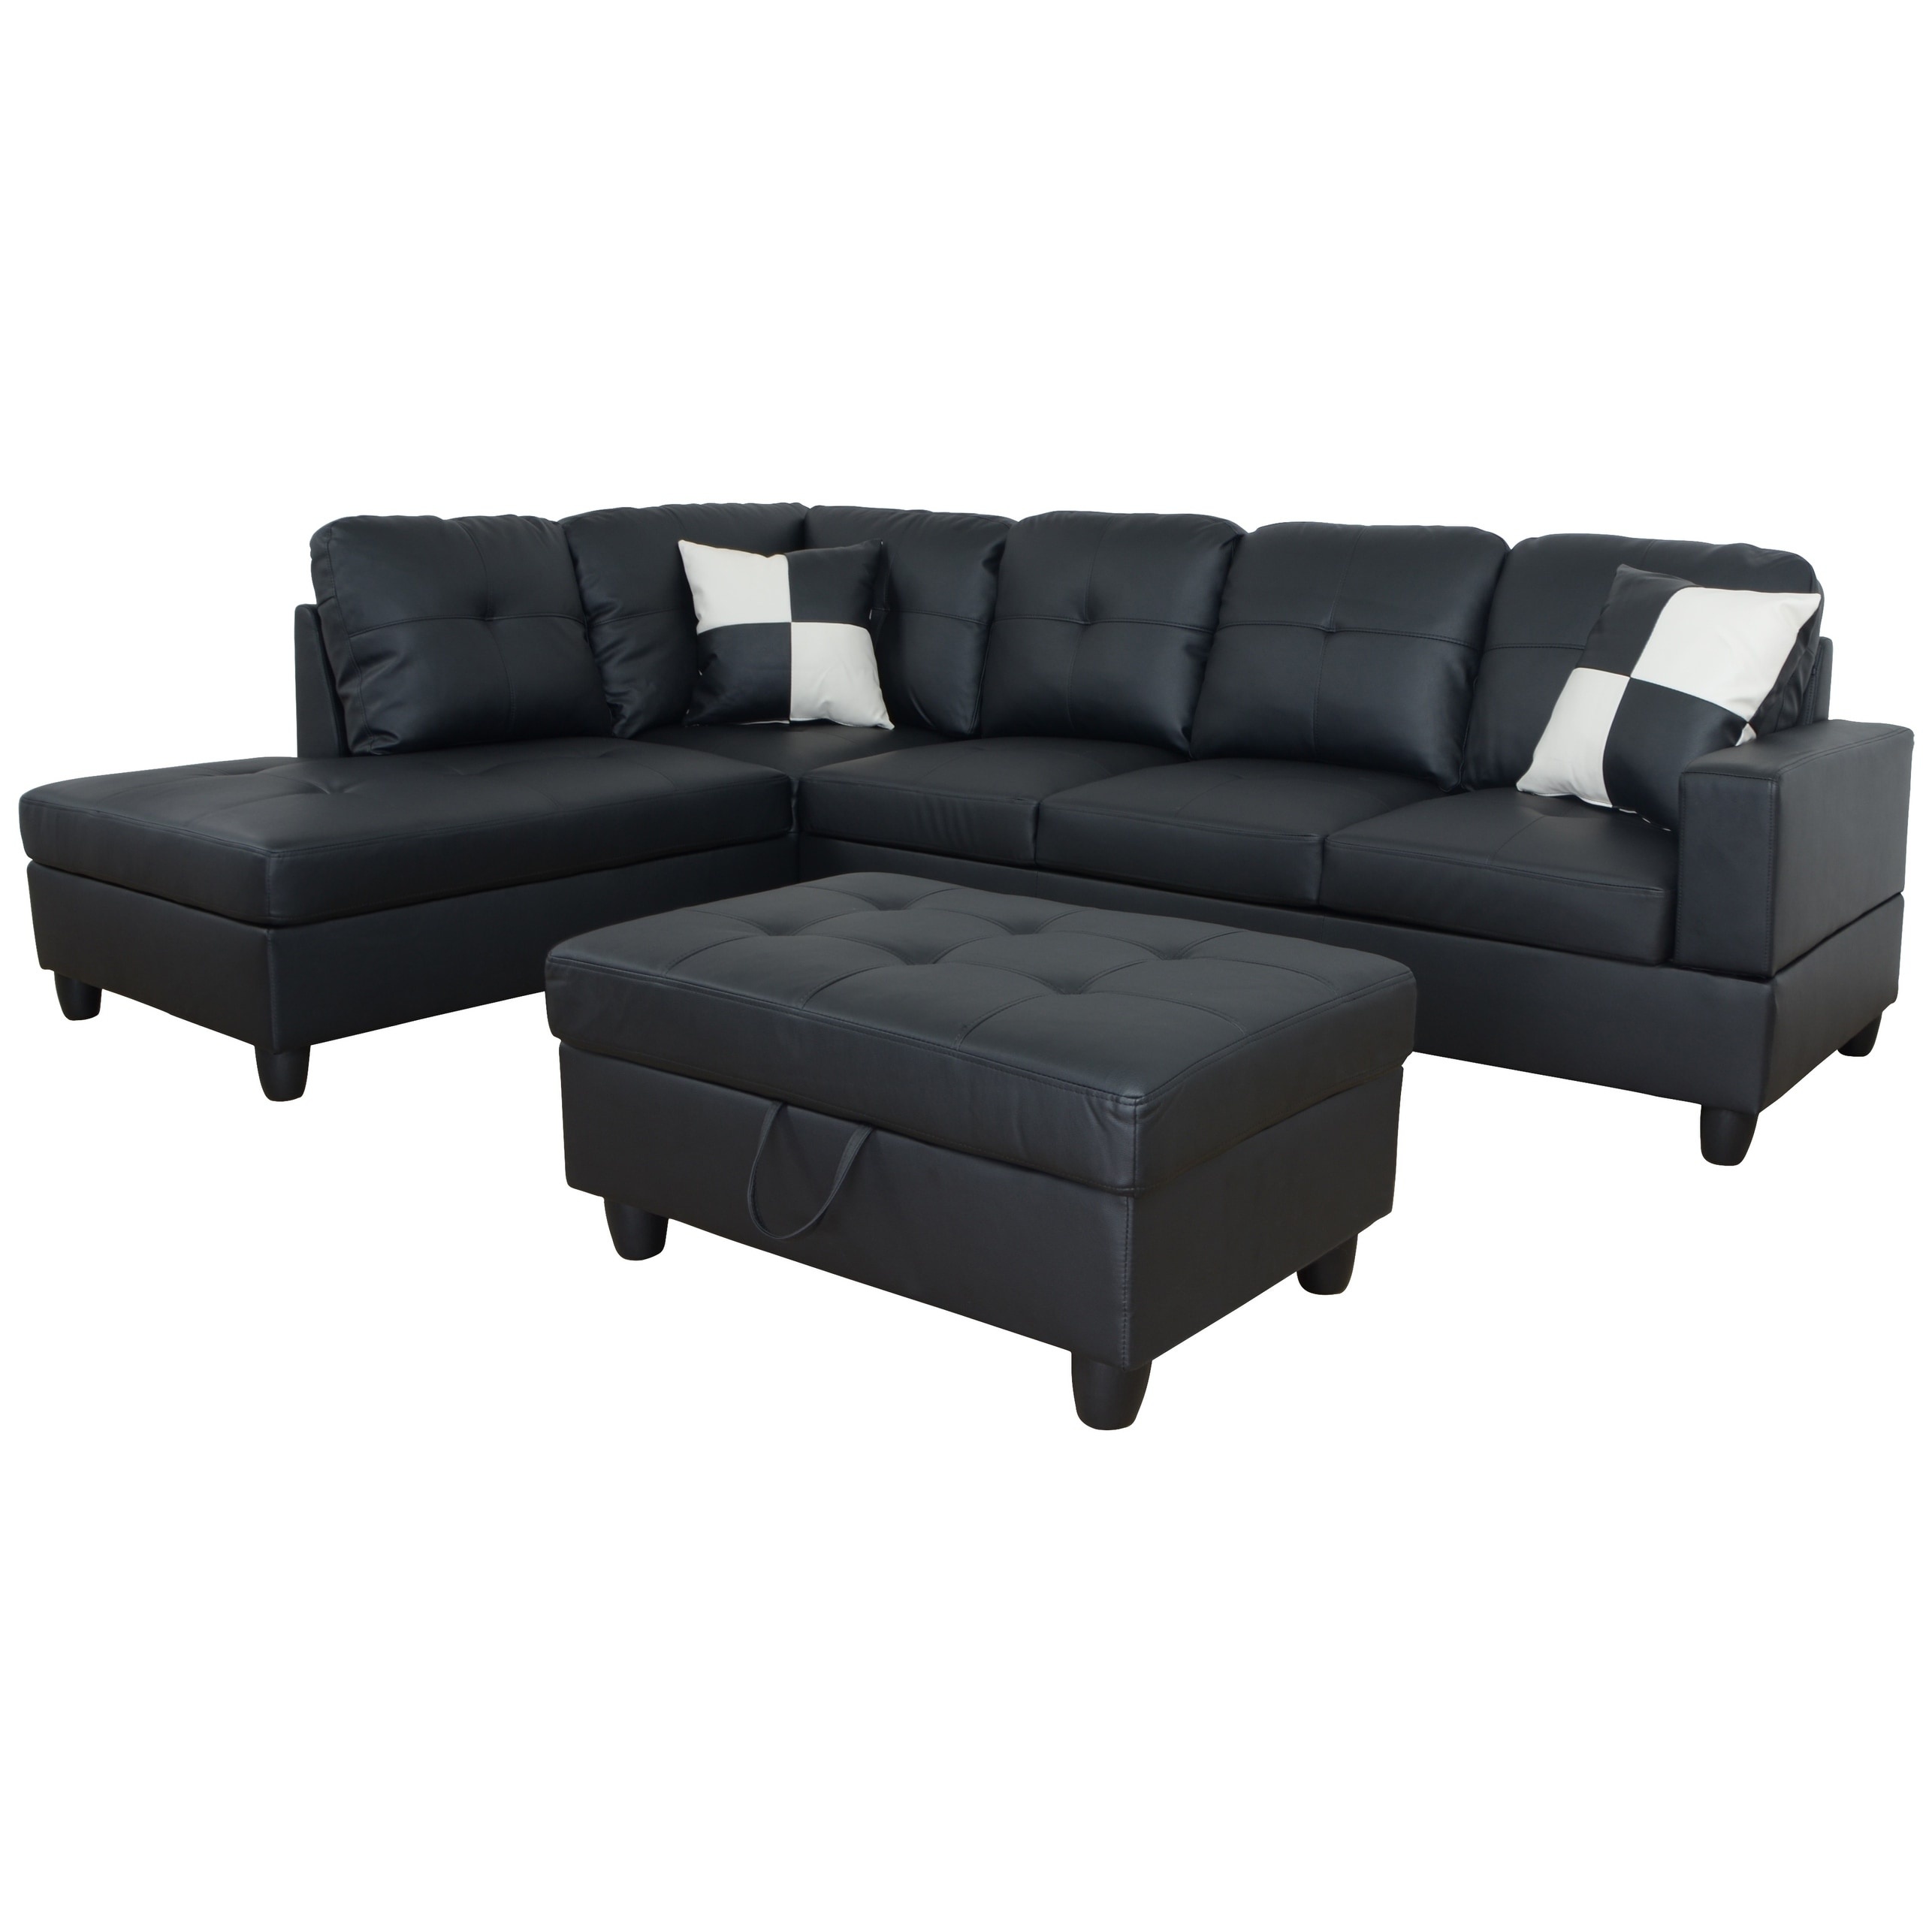 Sofa L Images Aycp Furniture L Shape Sectional Sofa With Storage Ottoman